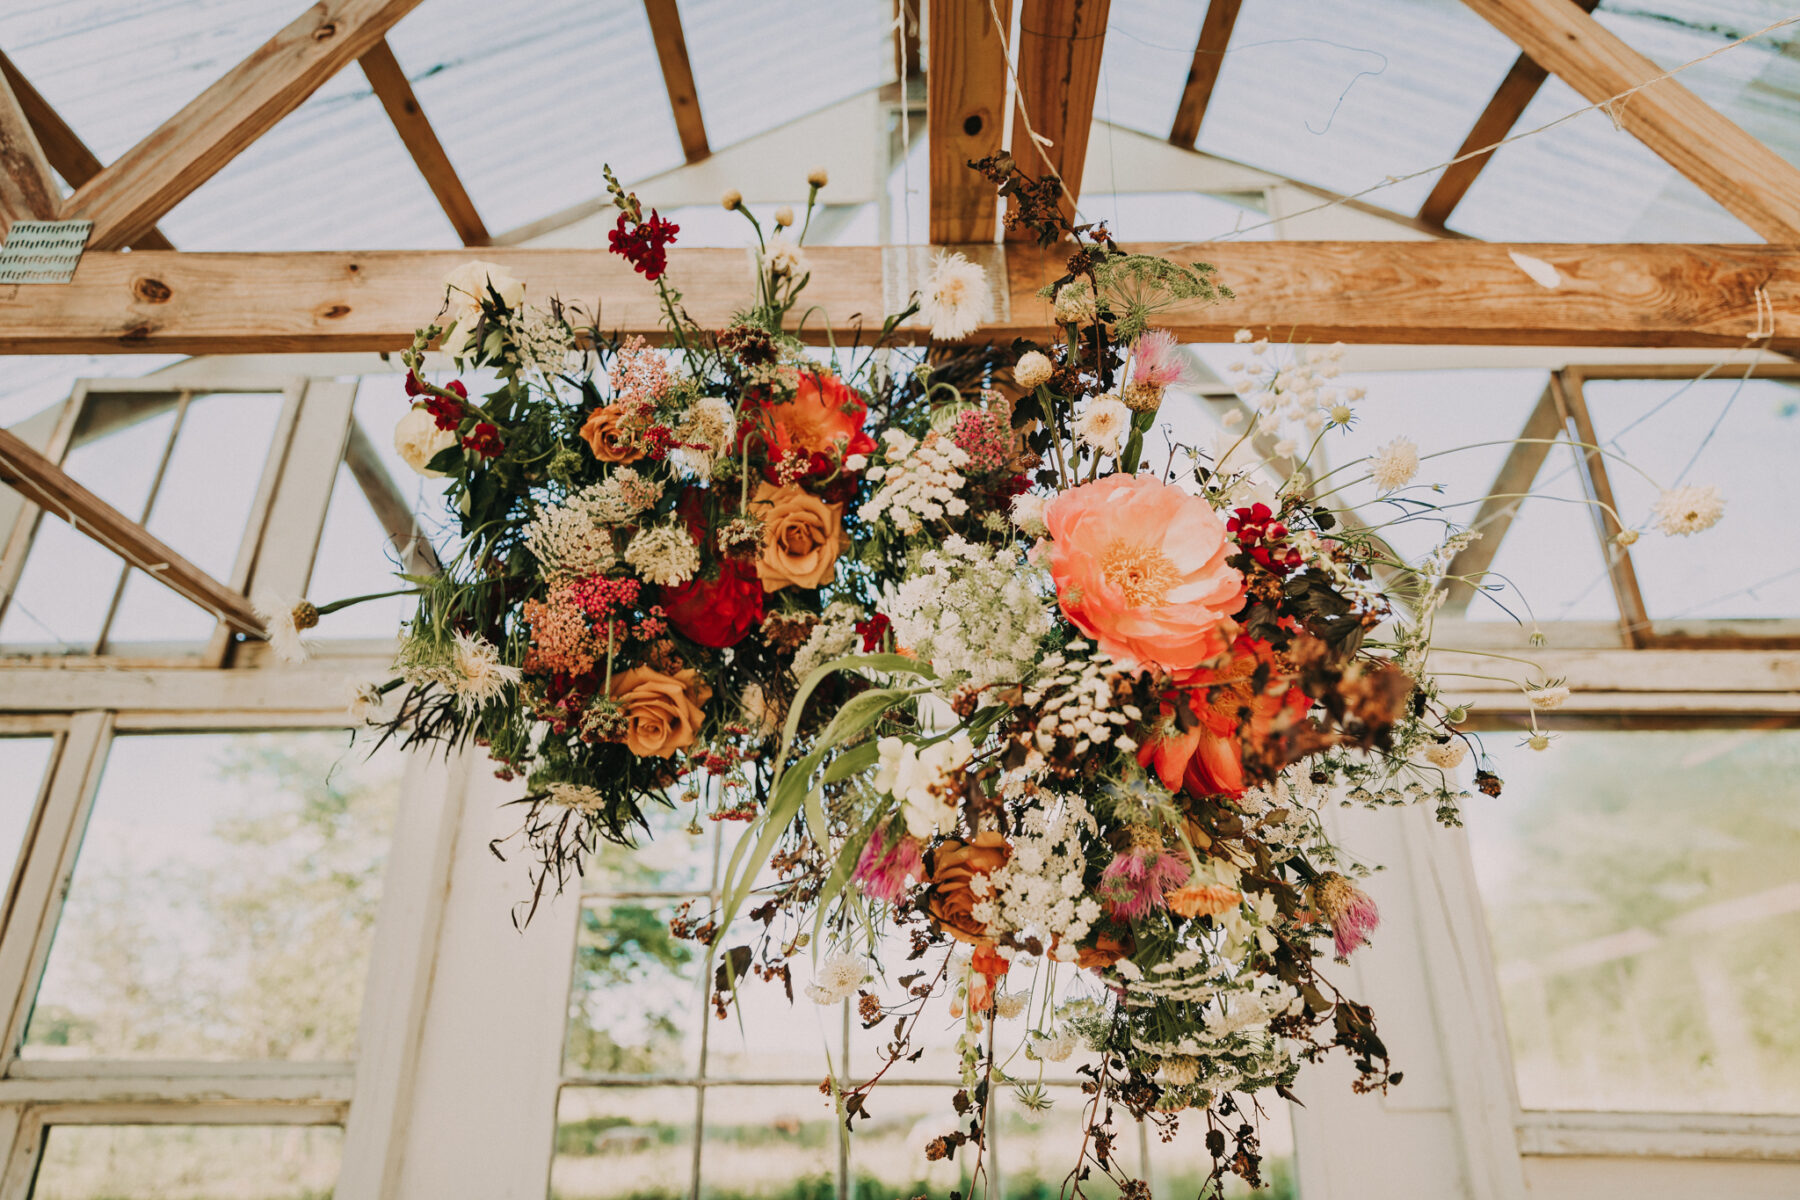 Hanging floral chandelier at wedding ceremony: Flower Farm Styled Shoot by Billie-Shaye Style featured on Nashville Bride Guide